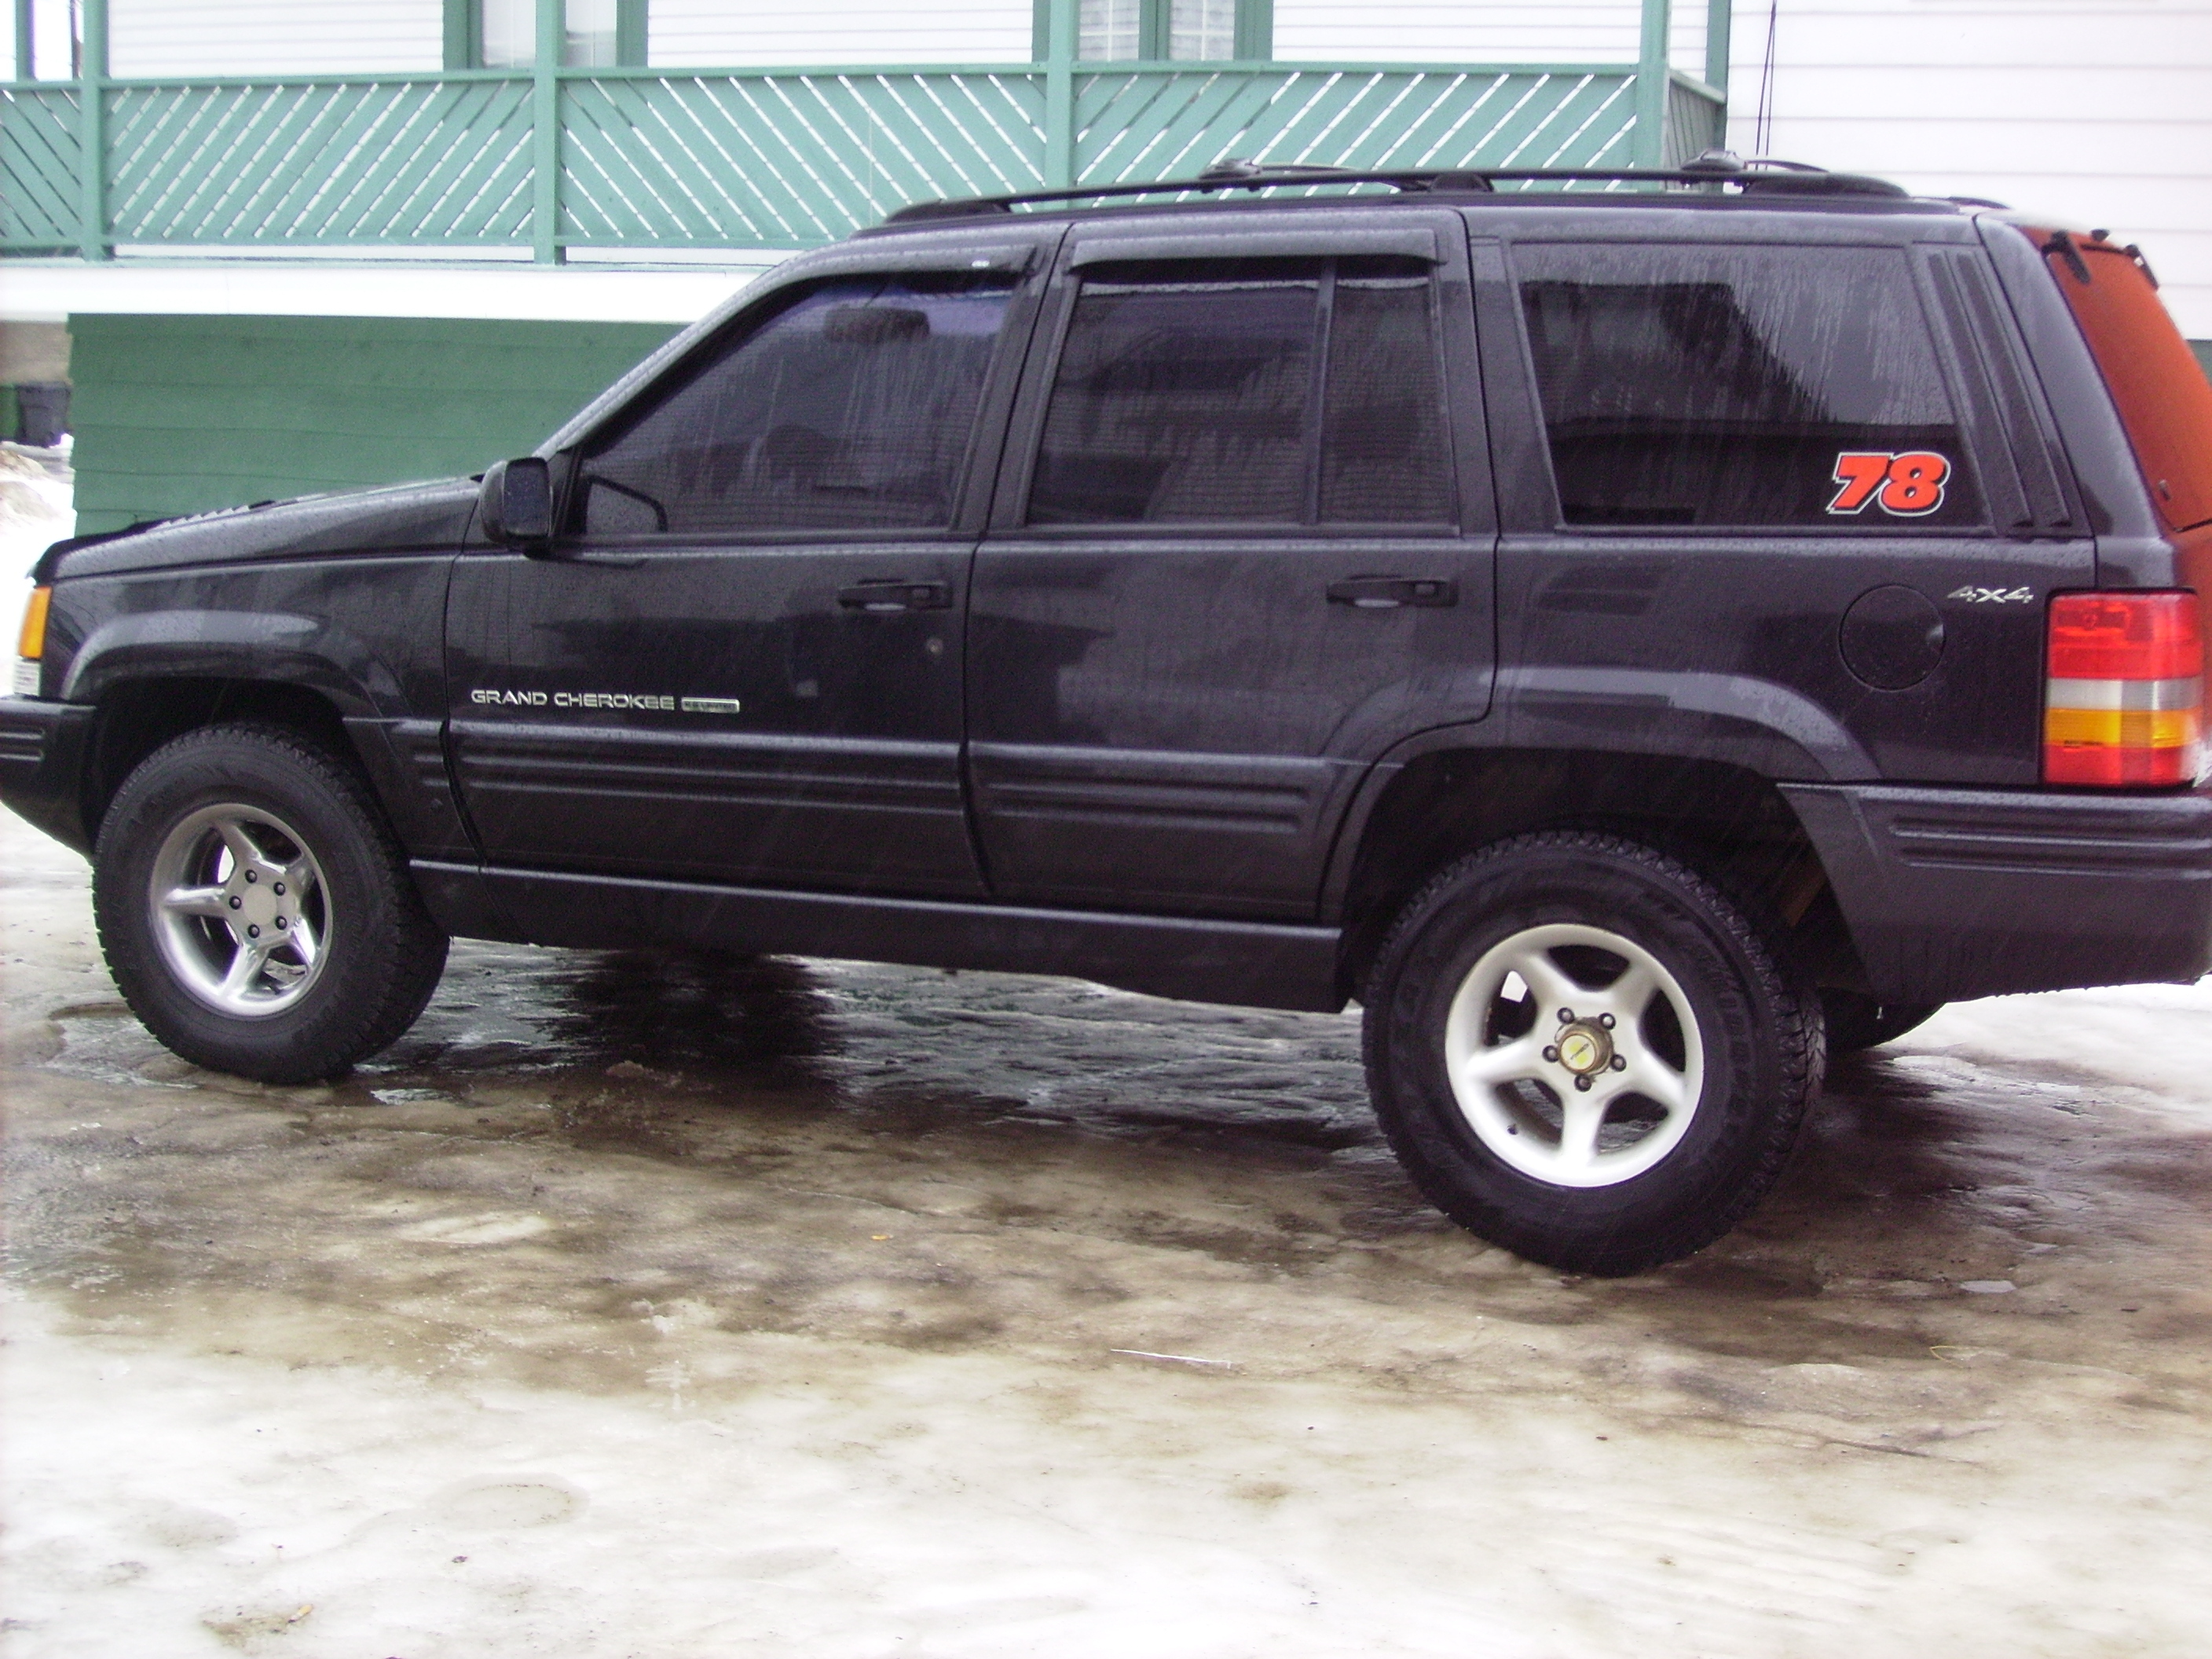 patmini's 1998 Jeep Grand Cherokee